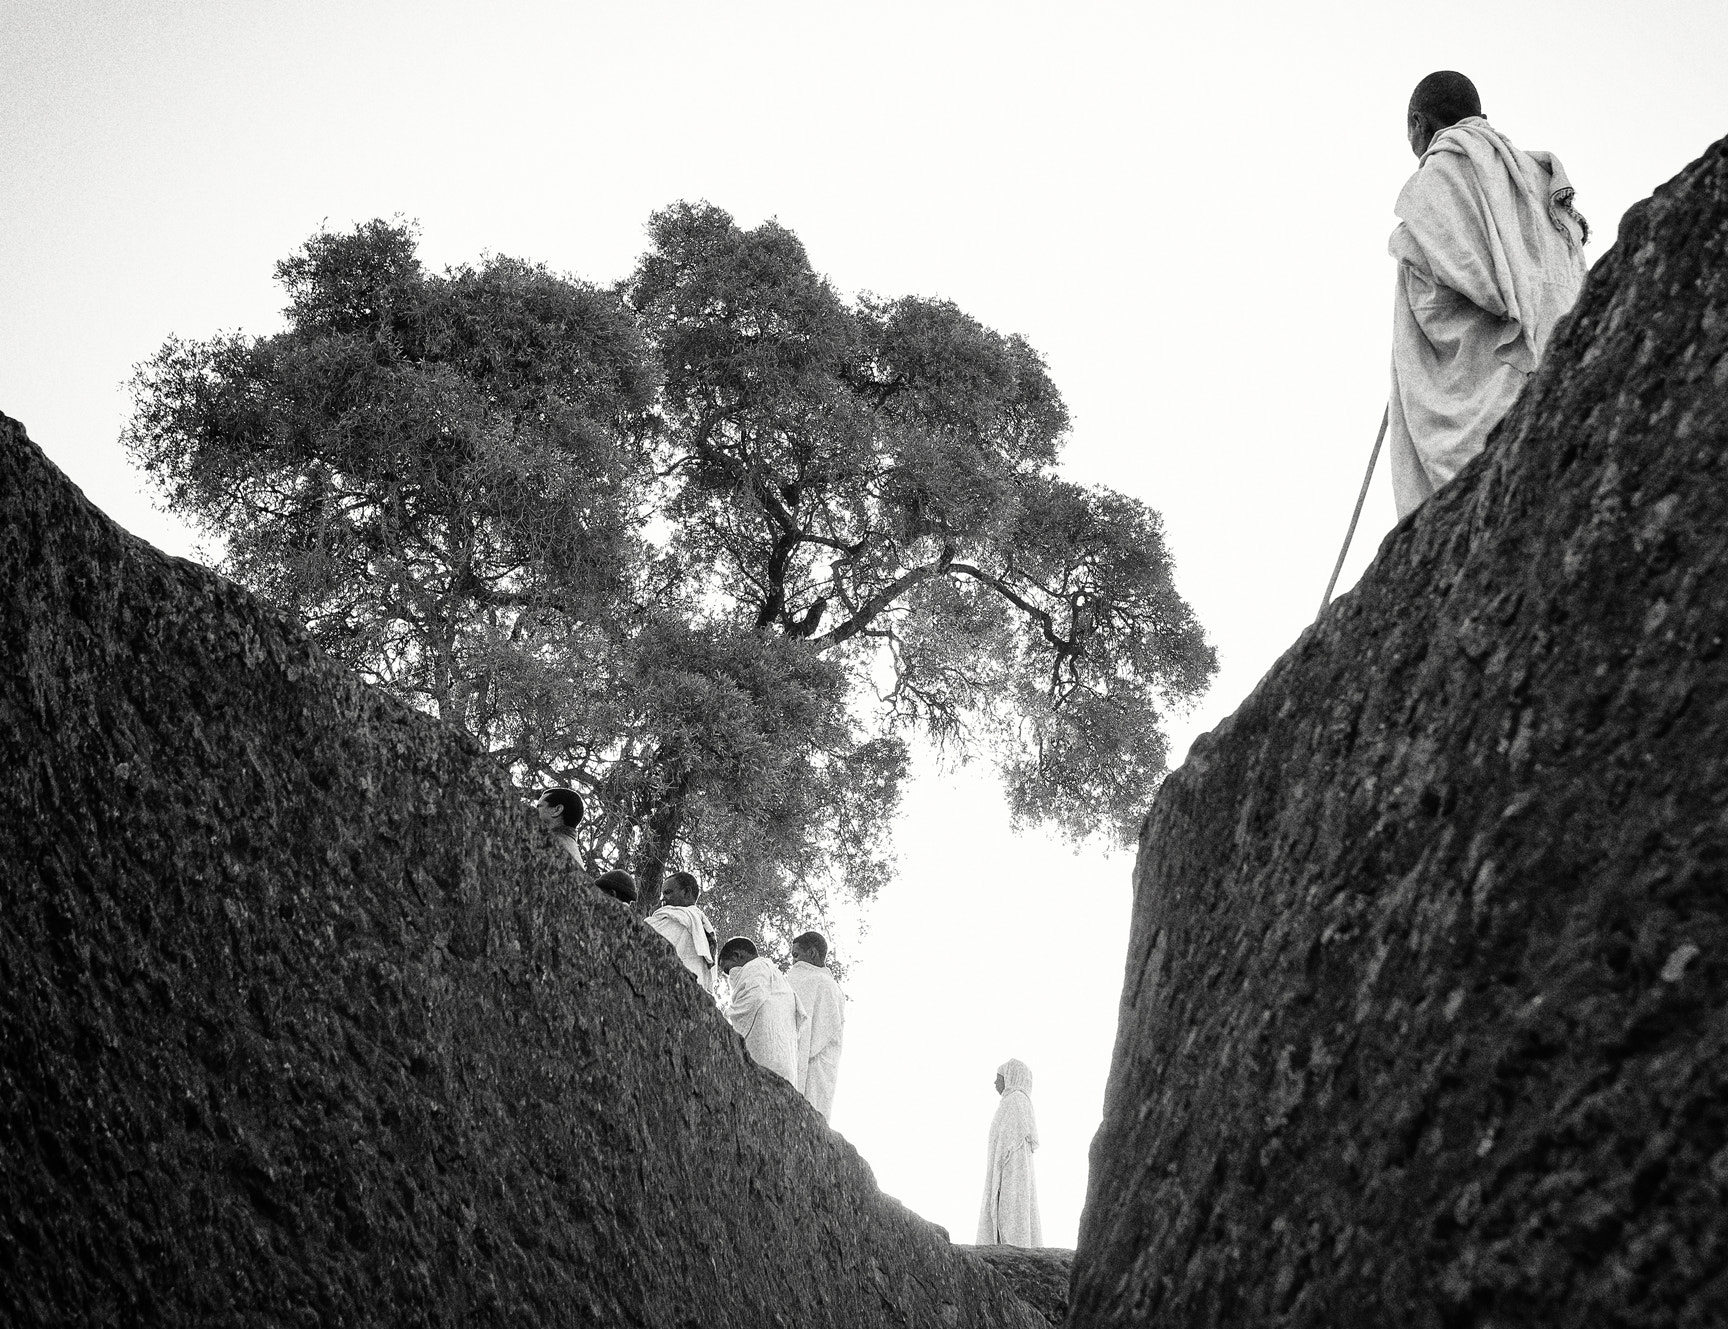 Photograph Sunday Service, Ethiopia by Roy Zipstein on 500px